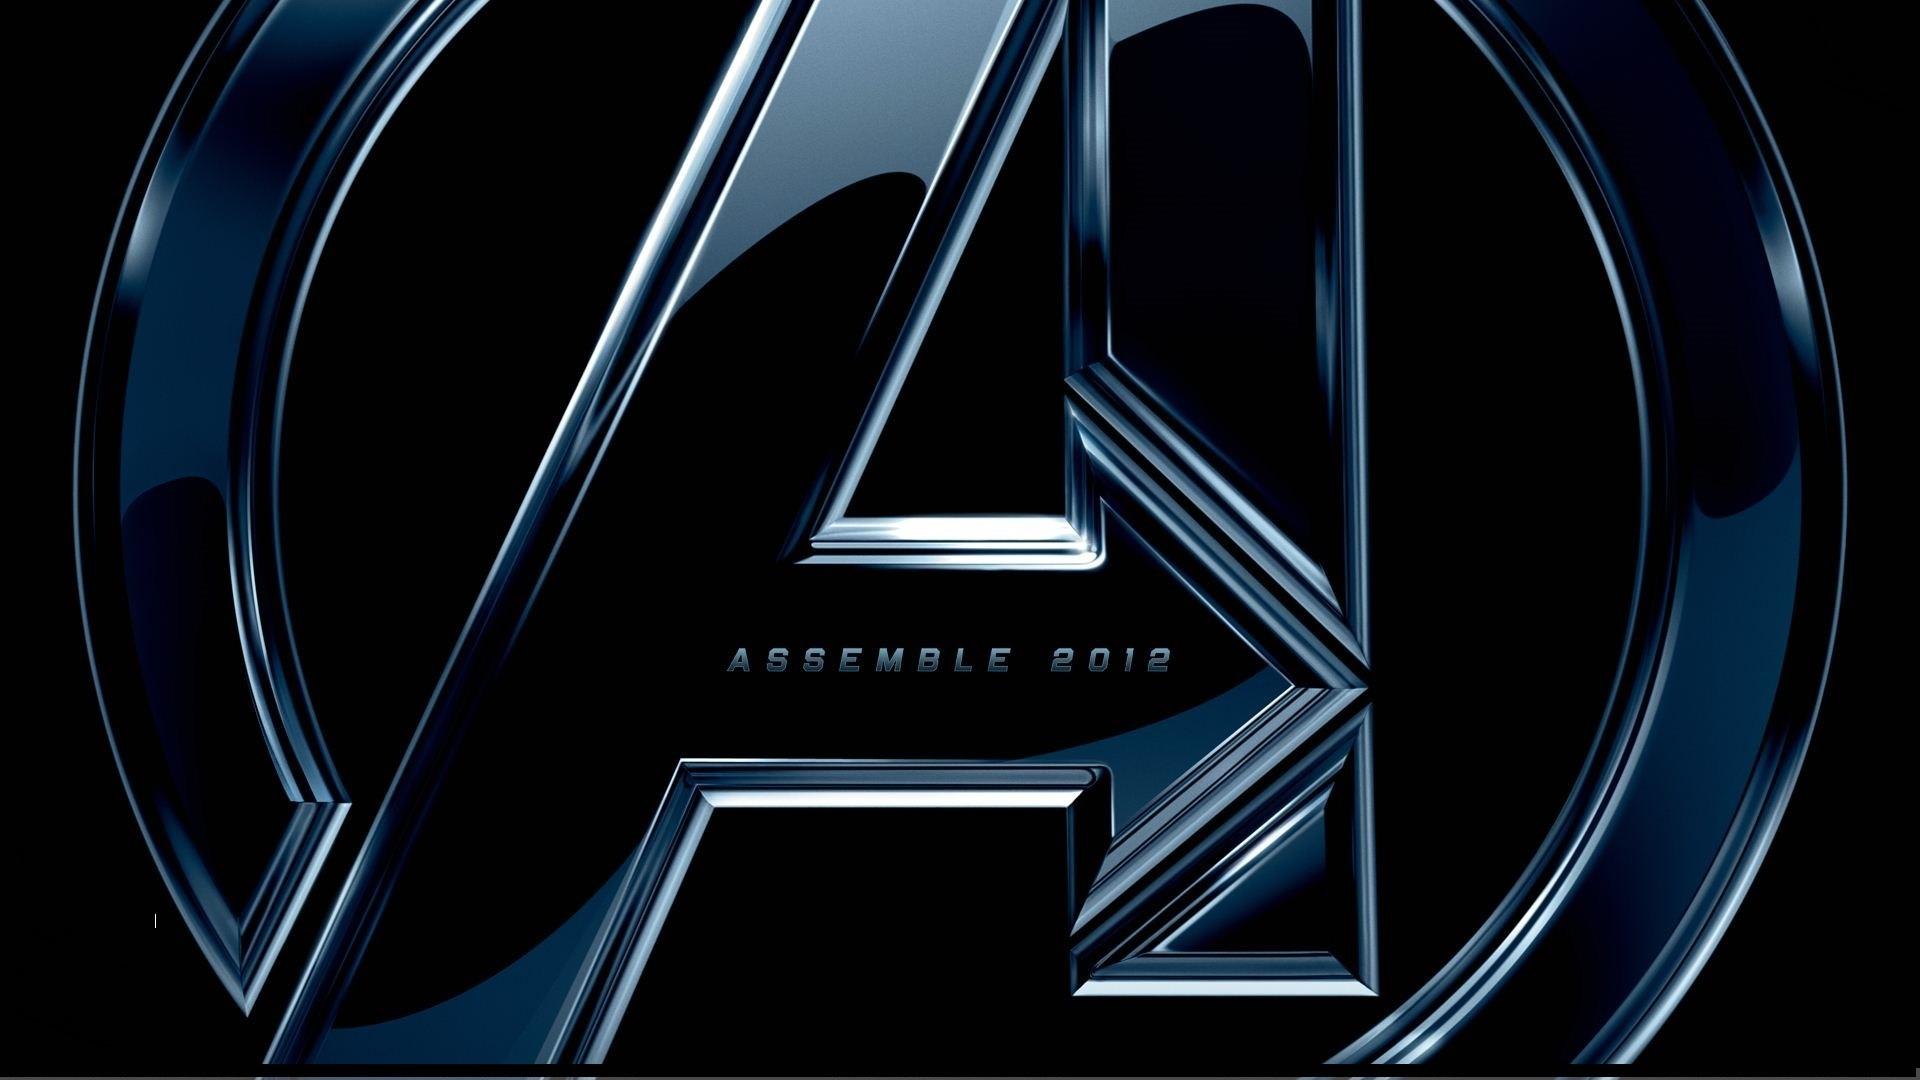 1920x1080 the avengers logo on black background wallpapers hd Wallpaper HD